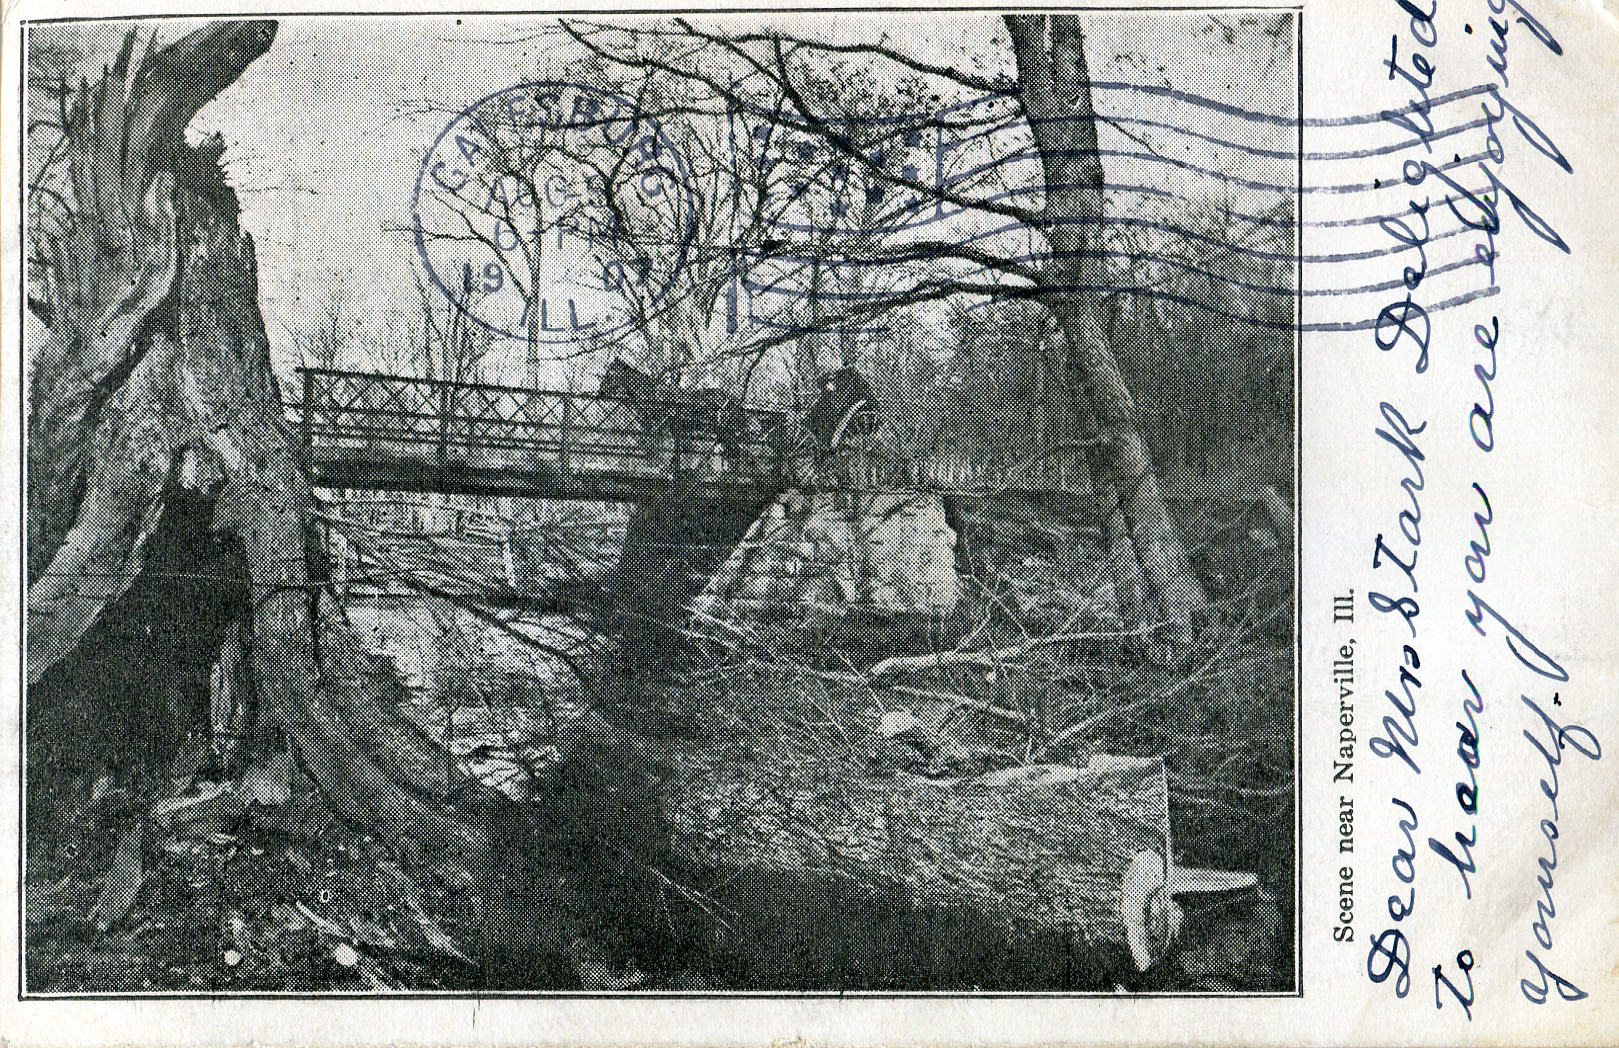 Bridge over DuPage River postcard